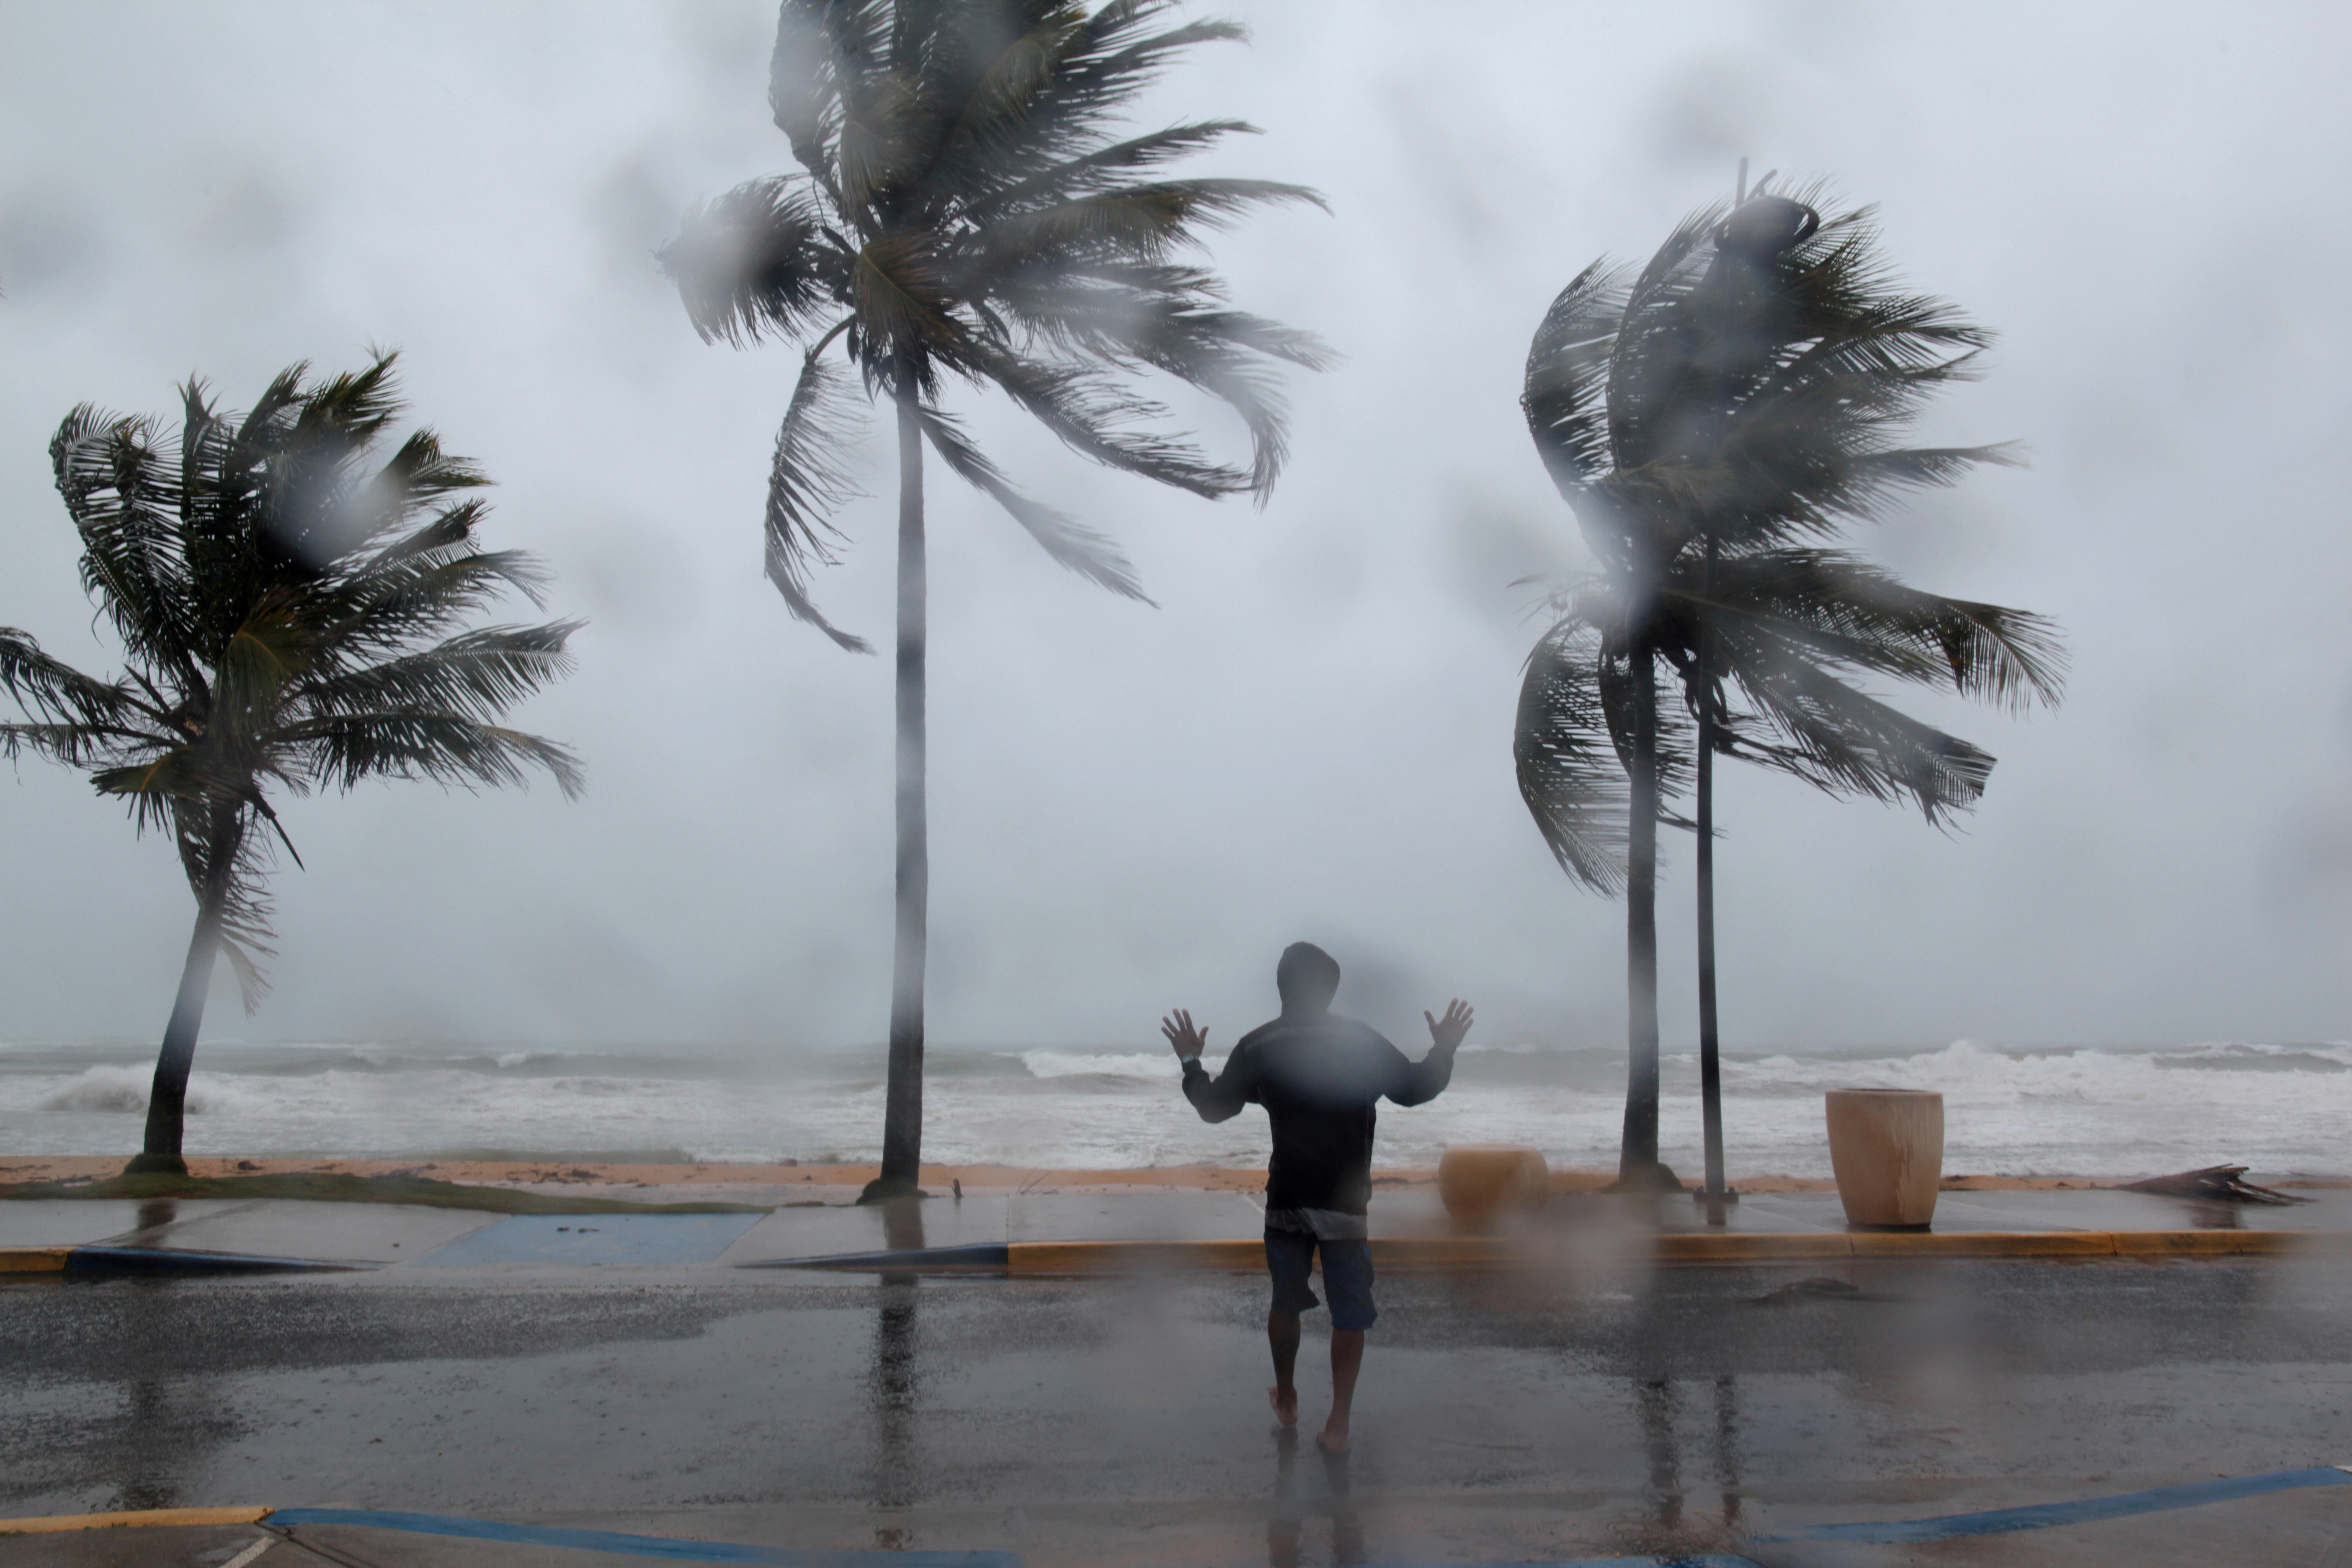 A man reacts in the winds and rain as Hurricane Irma slammed across islands in the northern Caribbean on Wednesday, in Luquillo, Puerto Rico September 6, 2017.  REUTERS/Alvin Baez     TPX IMAGES OF THE DAY - RC14353ED7A0